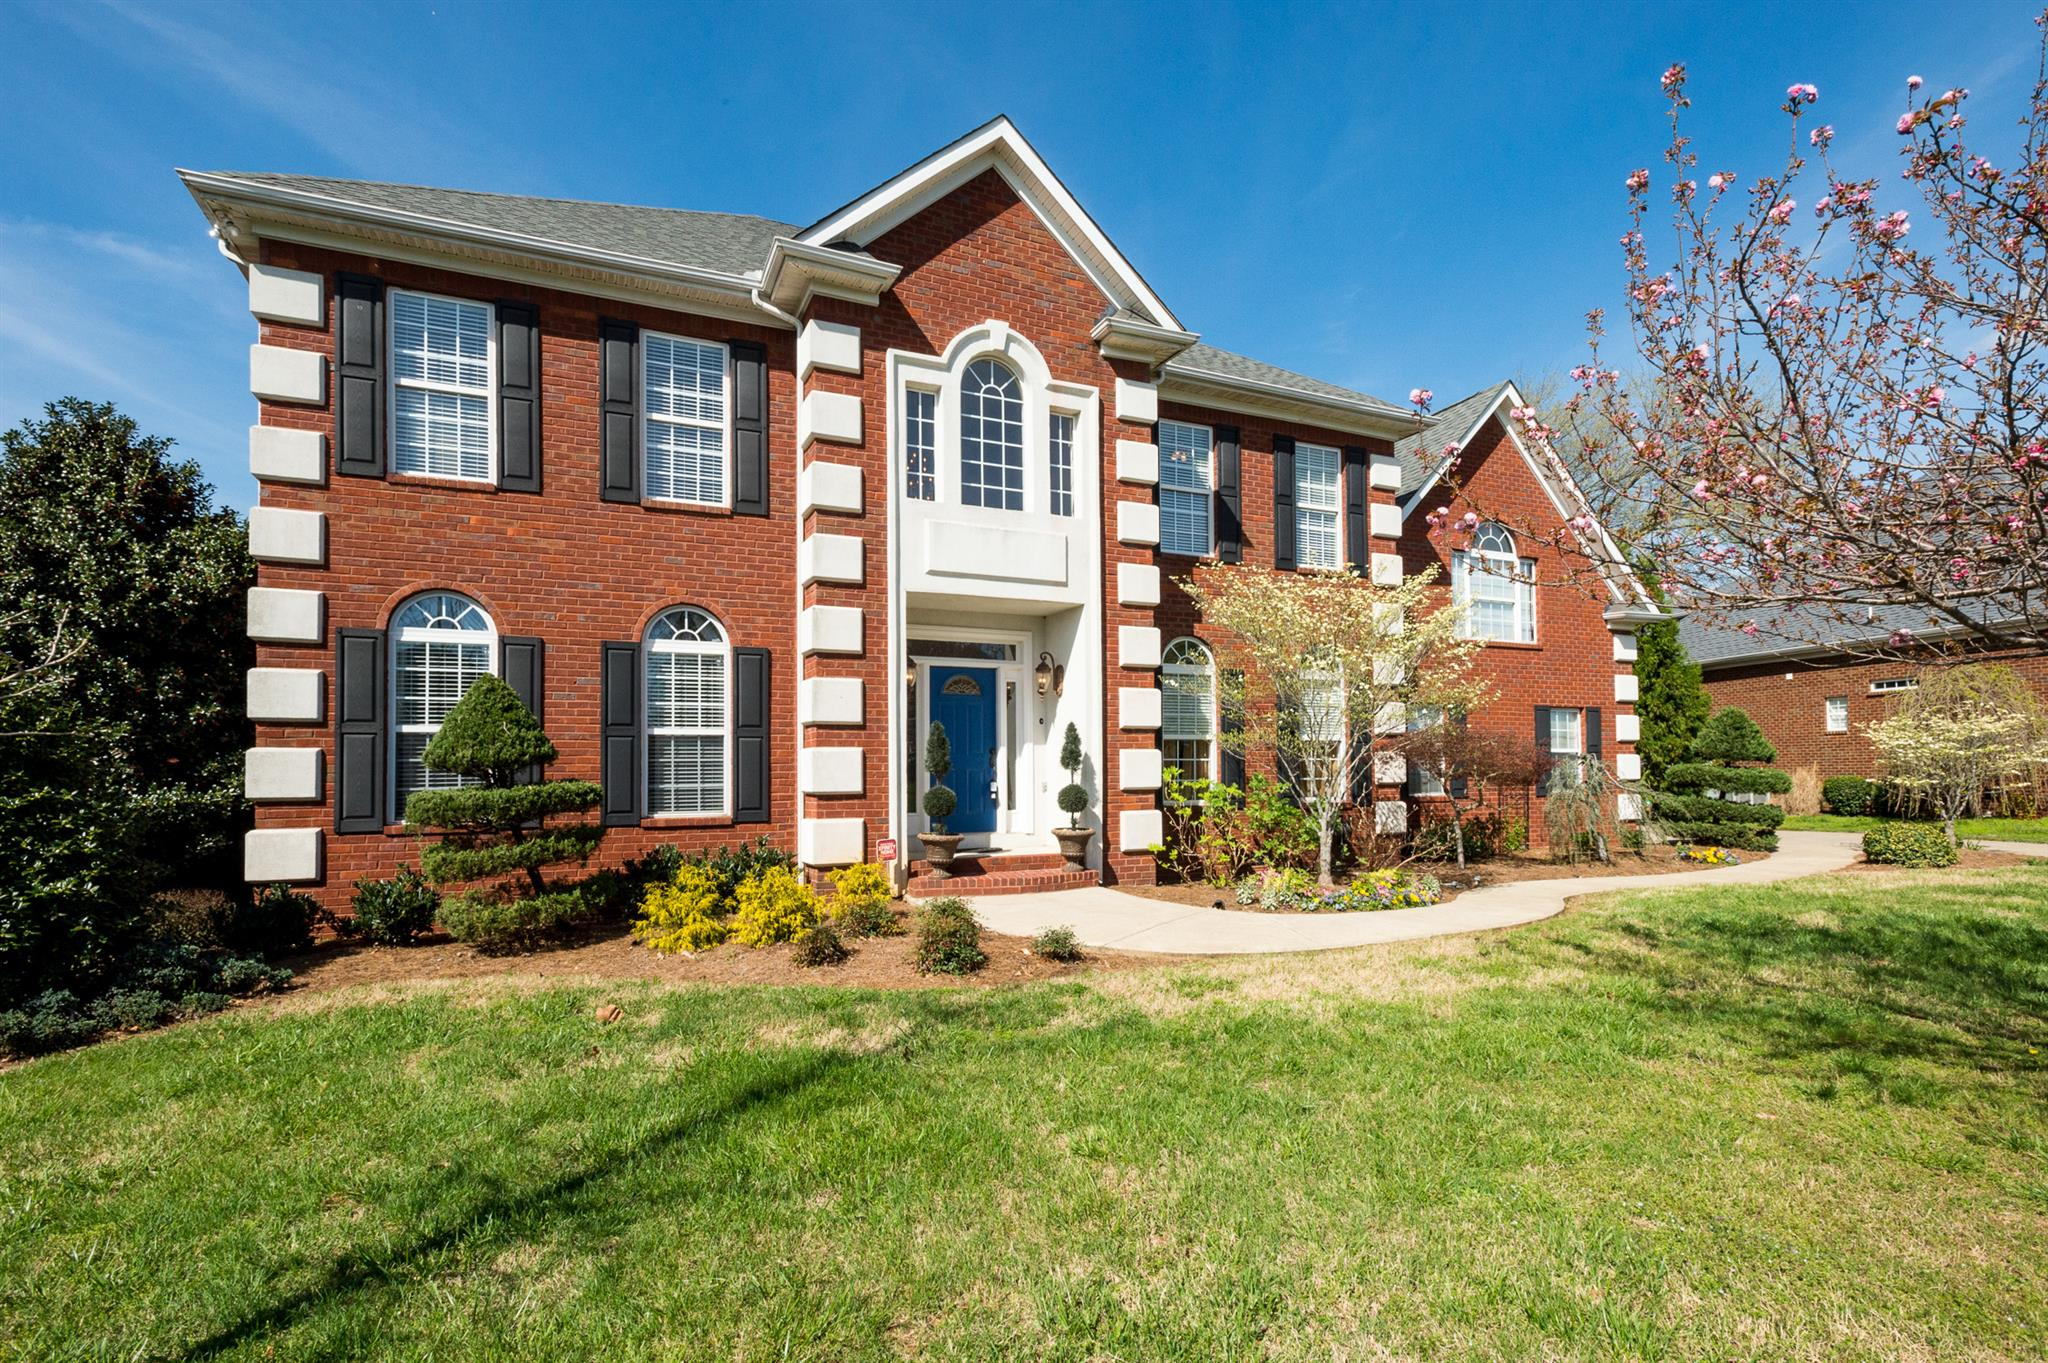 2642 Big Eagle Trl, Murfreesboro, TN 37127